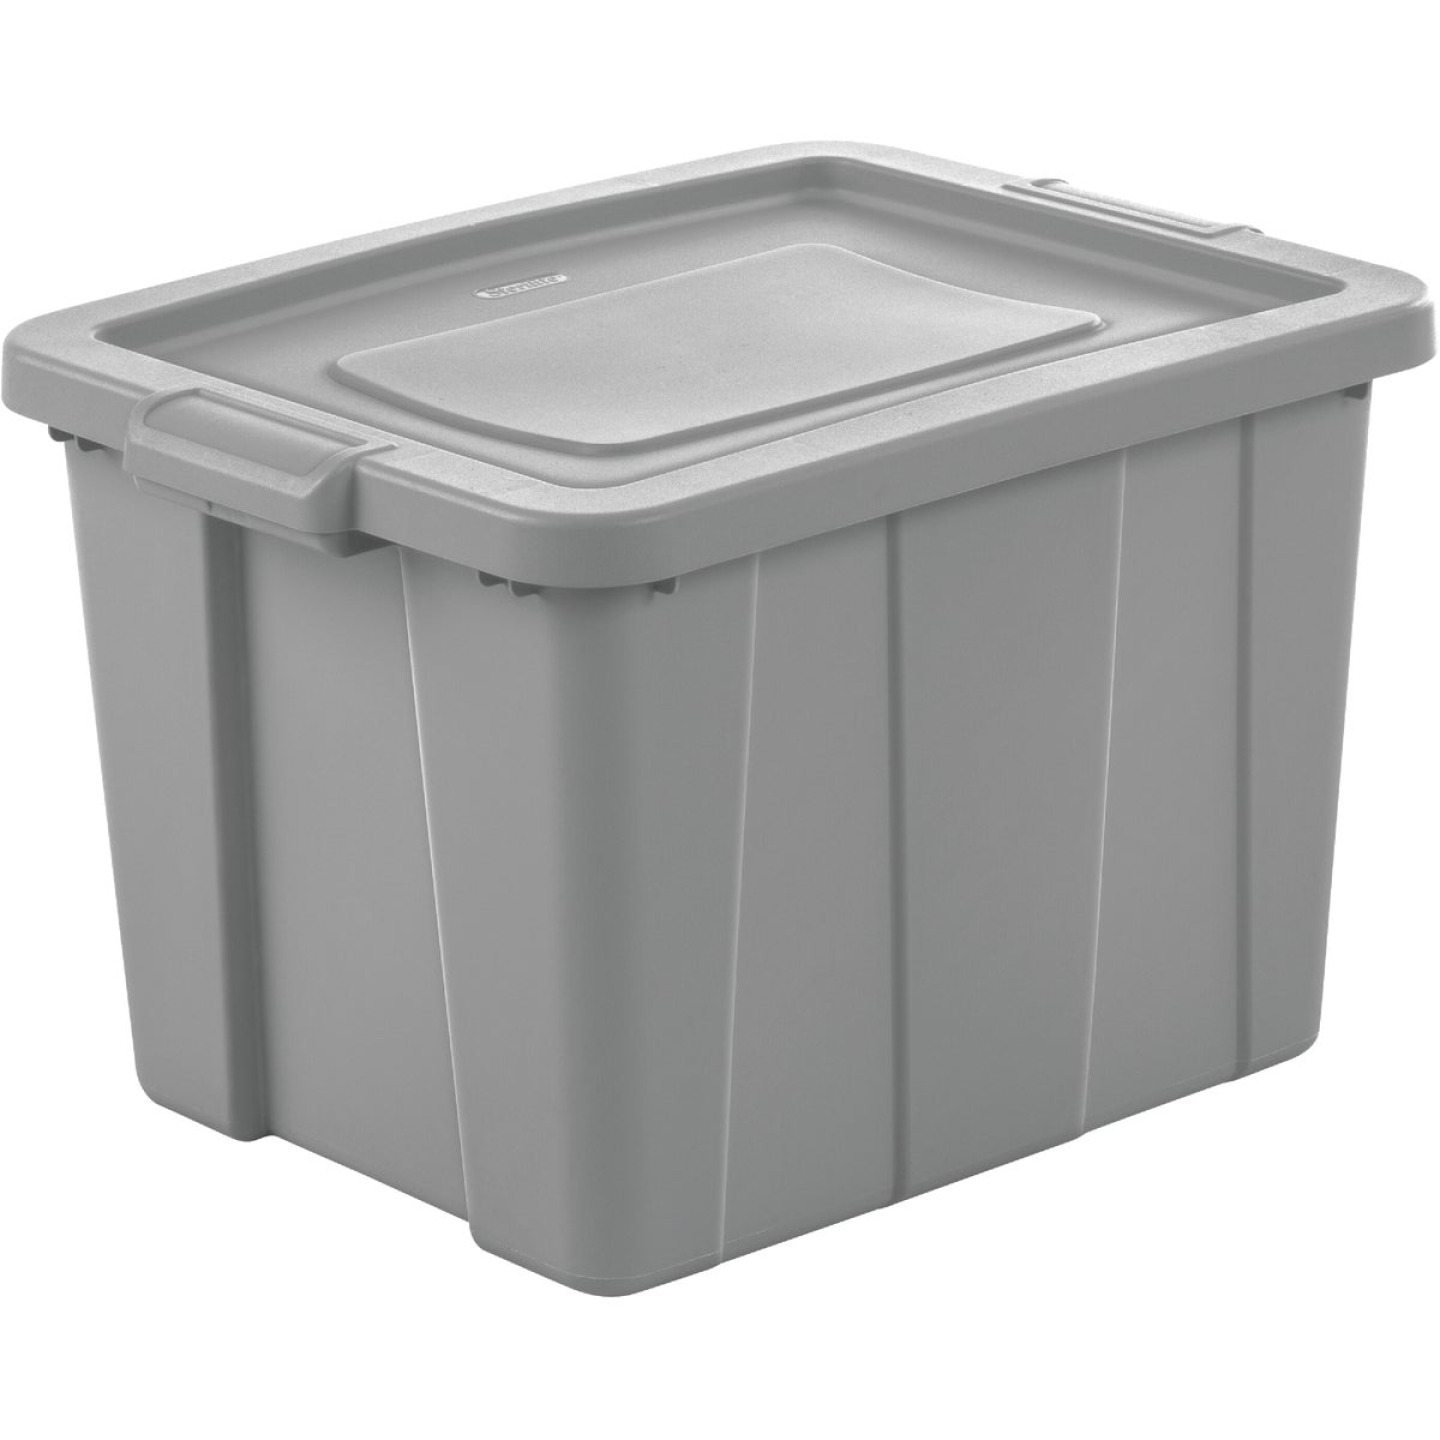 Sterilite Tuff1 18 Gal. Cement Tote with Handles Image 1